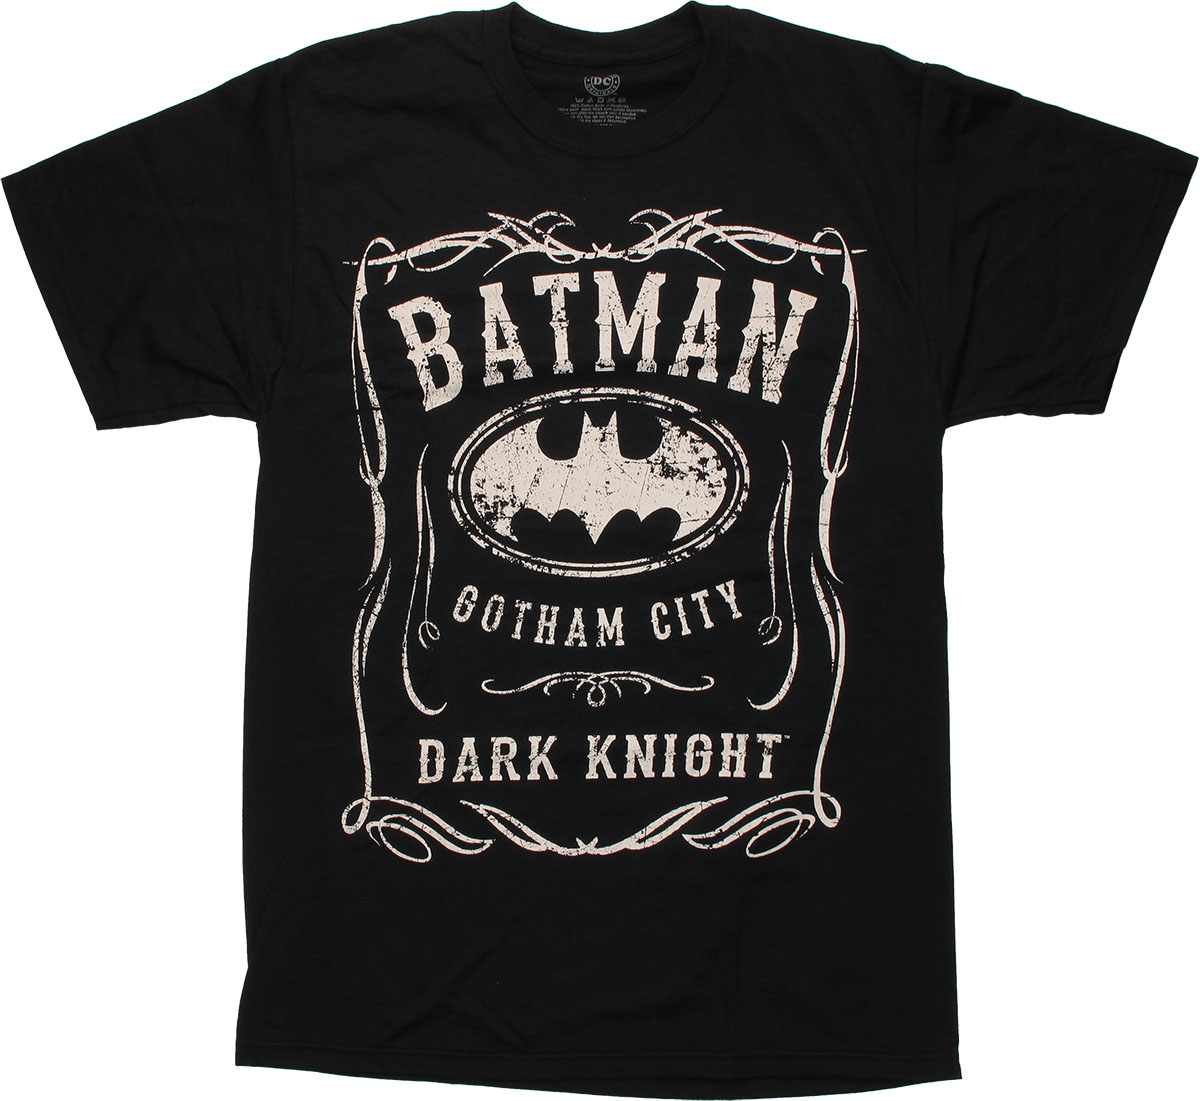 Printed batman costume shirt with eye mask and removable hooded cape. Popfunk Batman Logo Distressed Vintage DC Comics T Shirt & Exclusive Stickers. by Popfunk. $ - $ $ 18 $ 24 30 Prime. FREE Shipping on eligible orders. Some sizes are Prime eligible. out of 5 stars